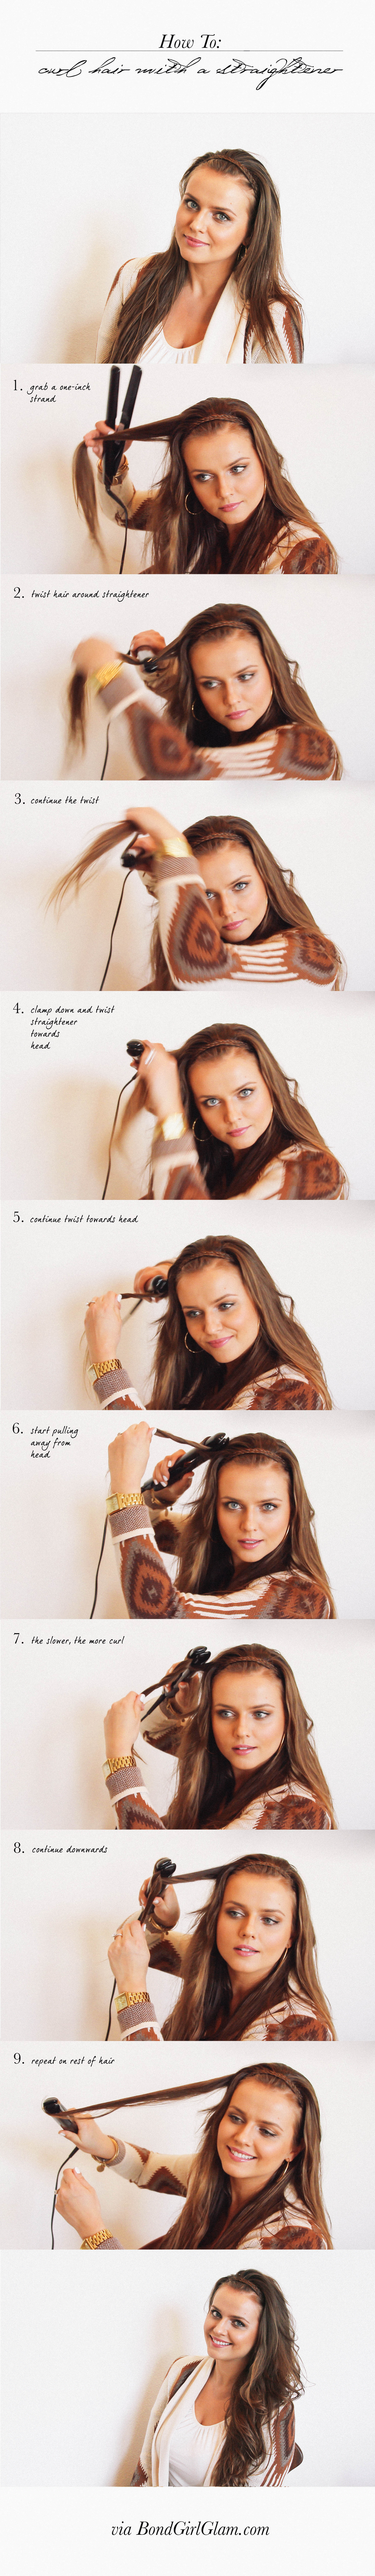 How To Curl Hair with a Straightener via BondGirlGlam.com